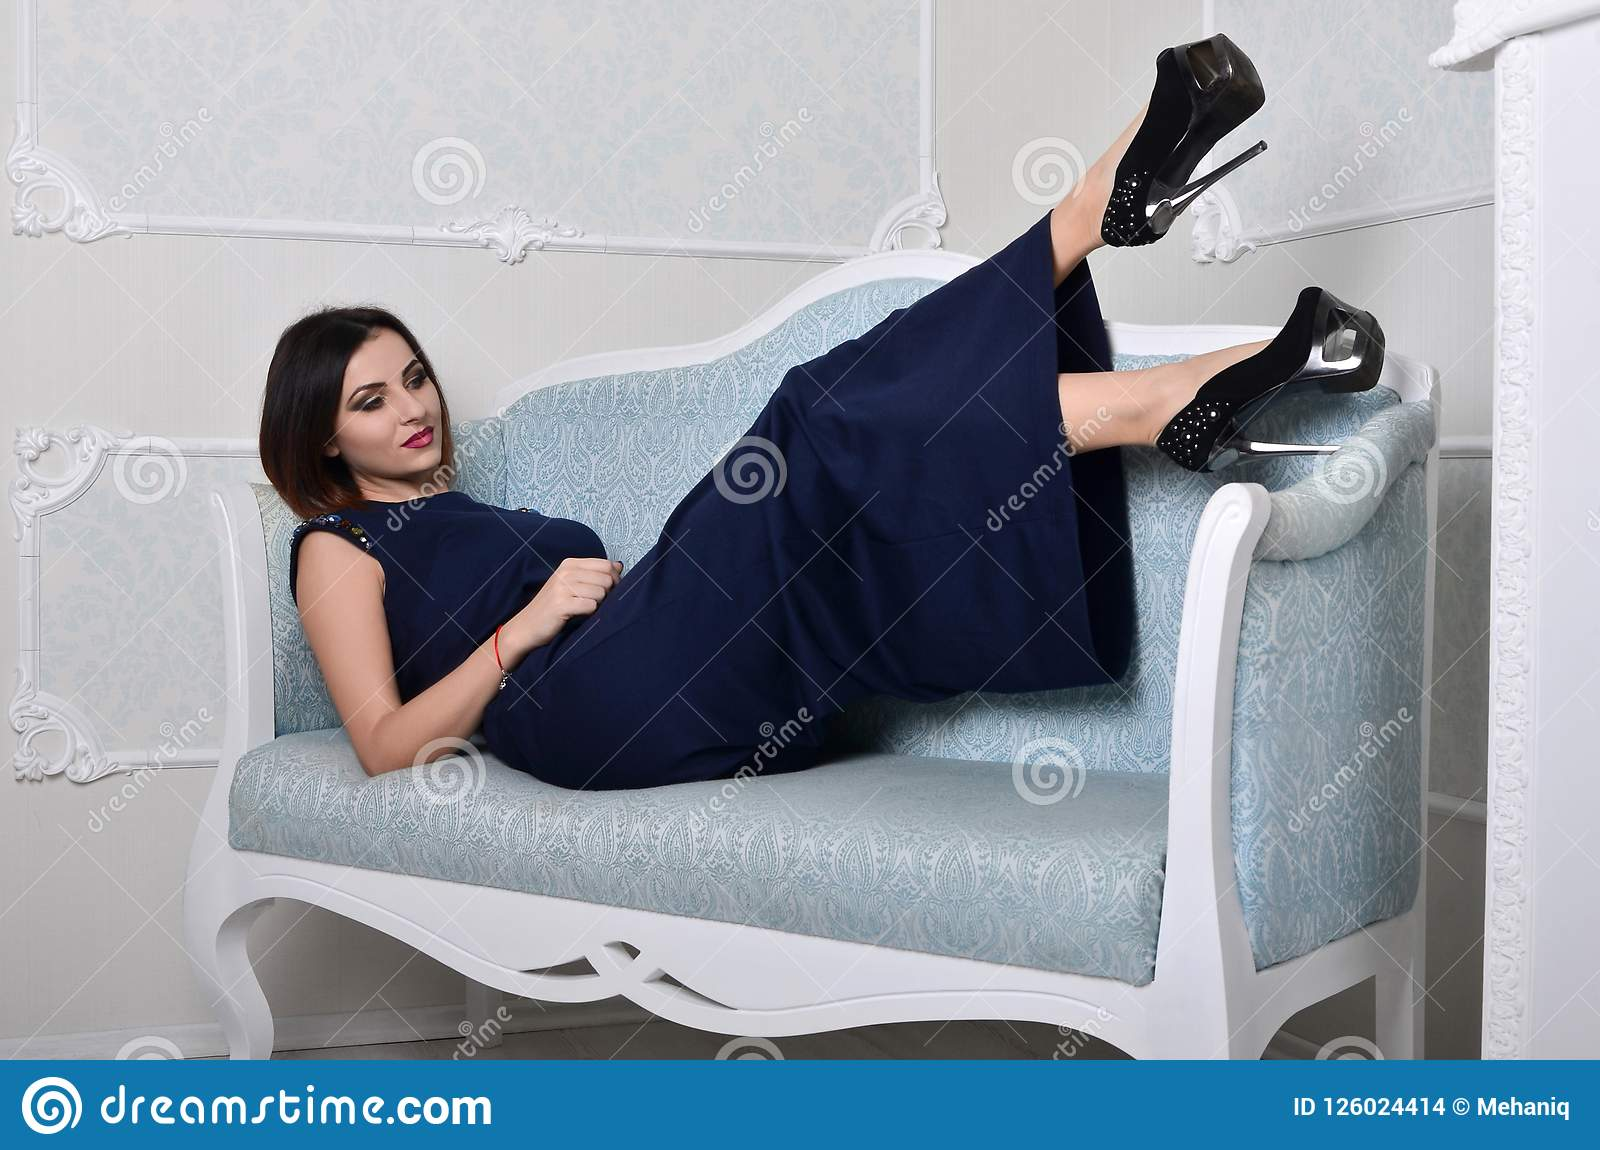 The girl in a dress lies on a blue sofa